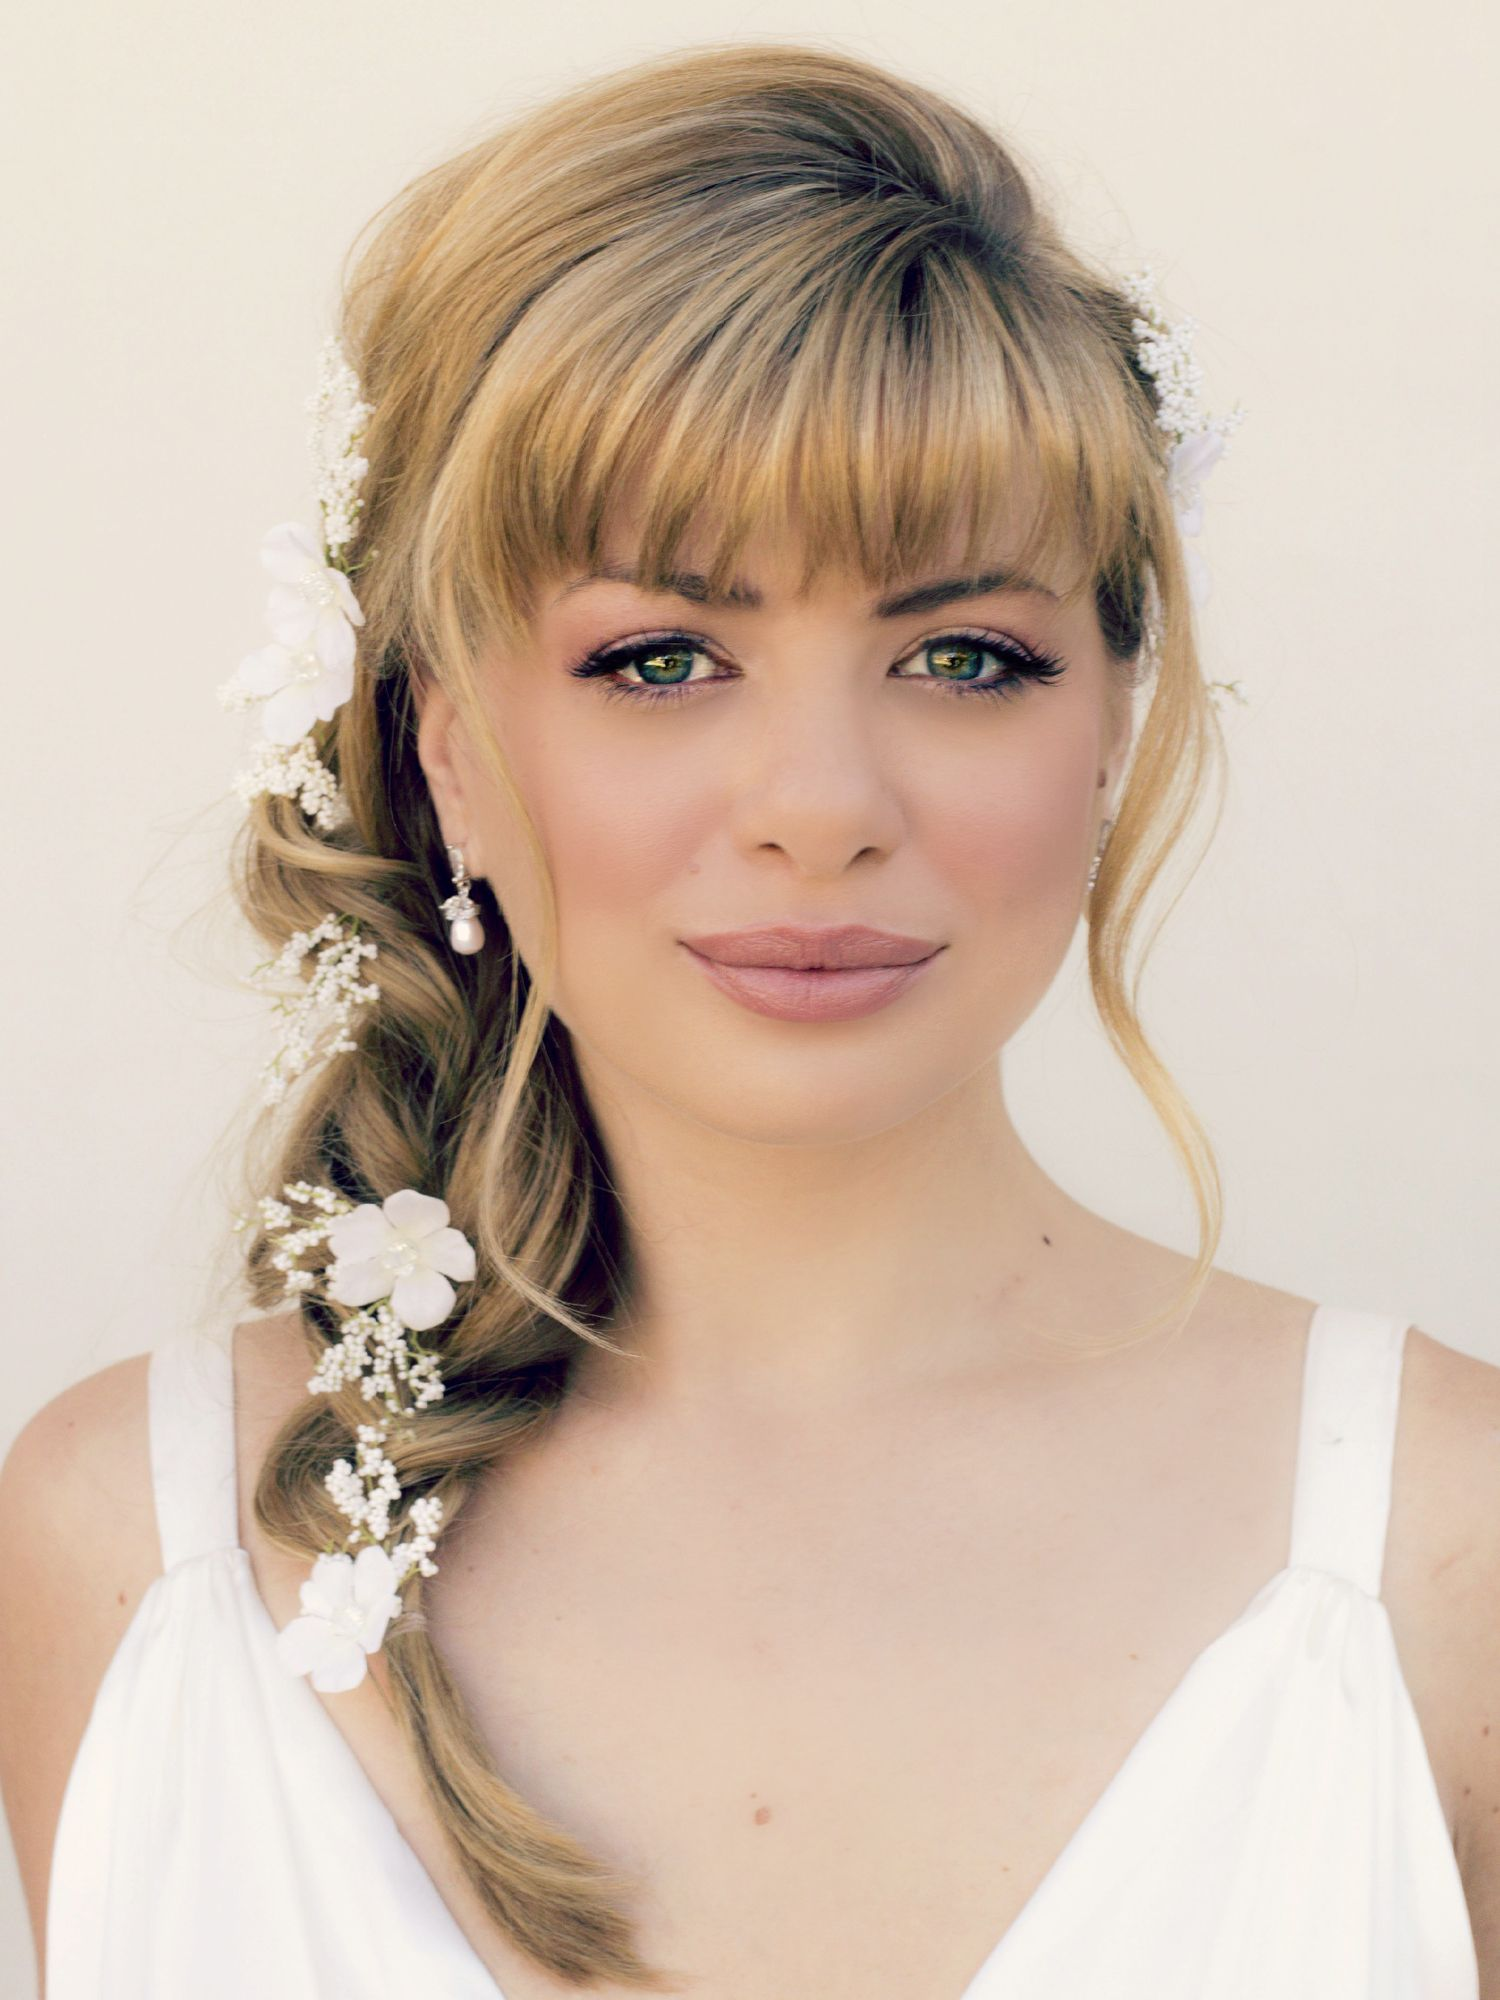 20 Hairstyles With Bangs To Inspire You For Fall 2015